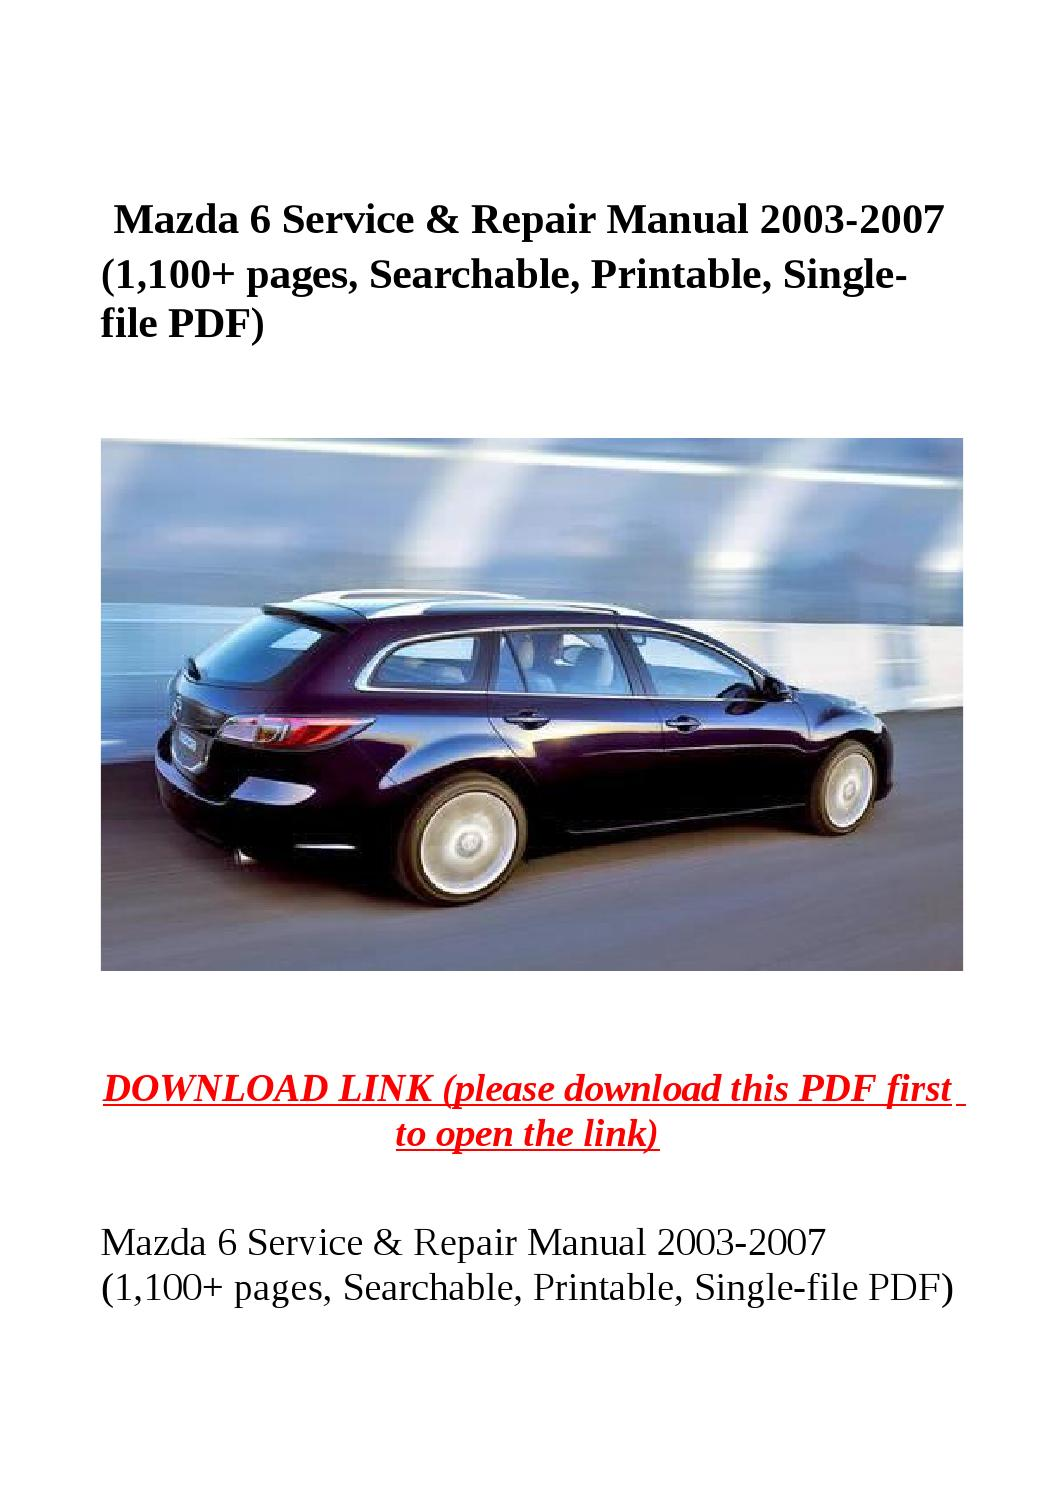 Mazda 6 service & repair manual 2003 2007 (1,100 pages, searchable,  printable, single file pdf) by yghj - issuu